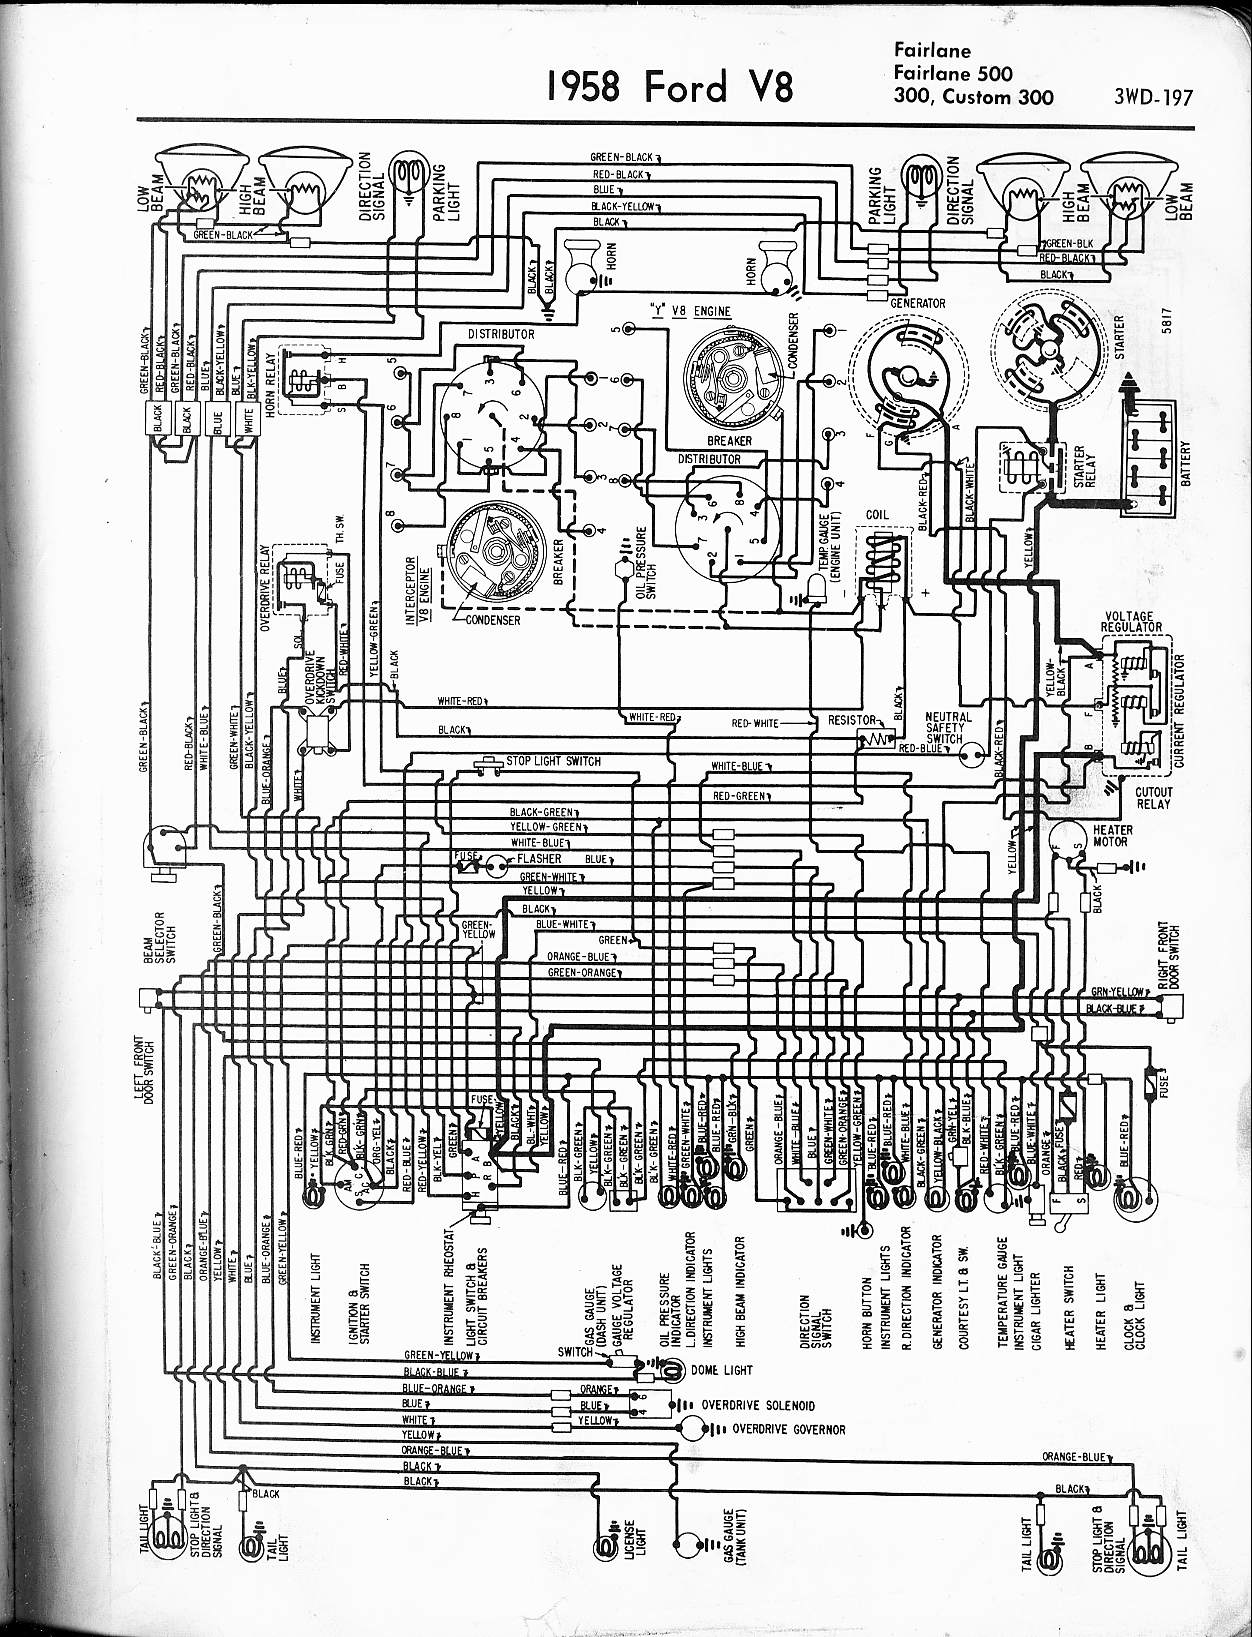 MWire5765 197 ford wiring diagrams online ford wiring diagrams instruction free ford wiring diagrams at soozxer.org